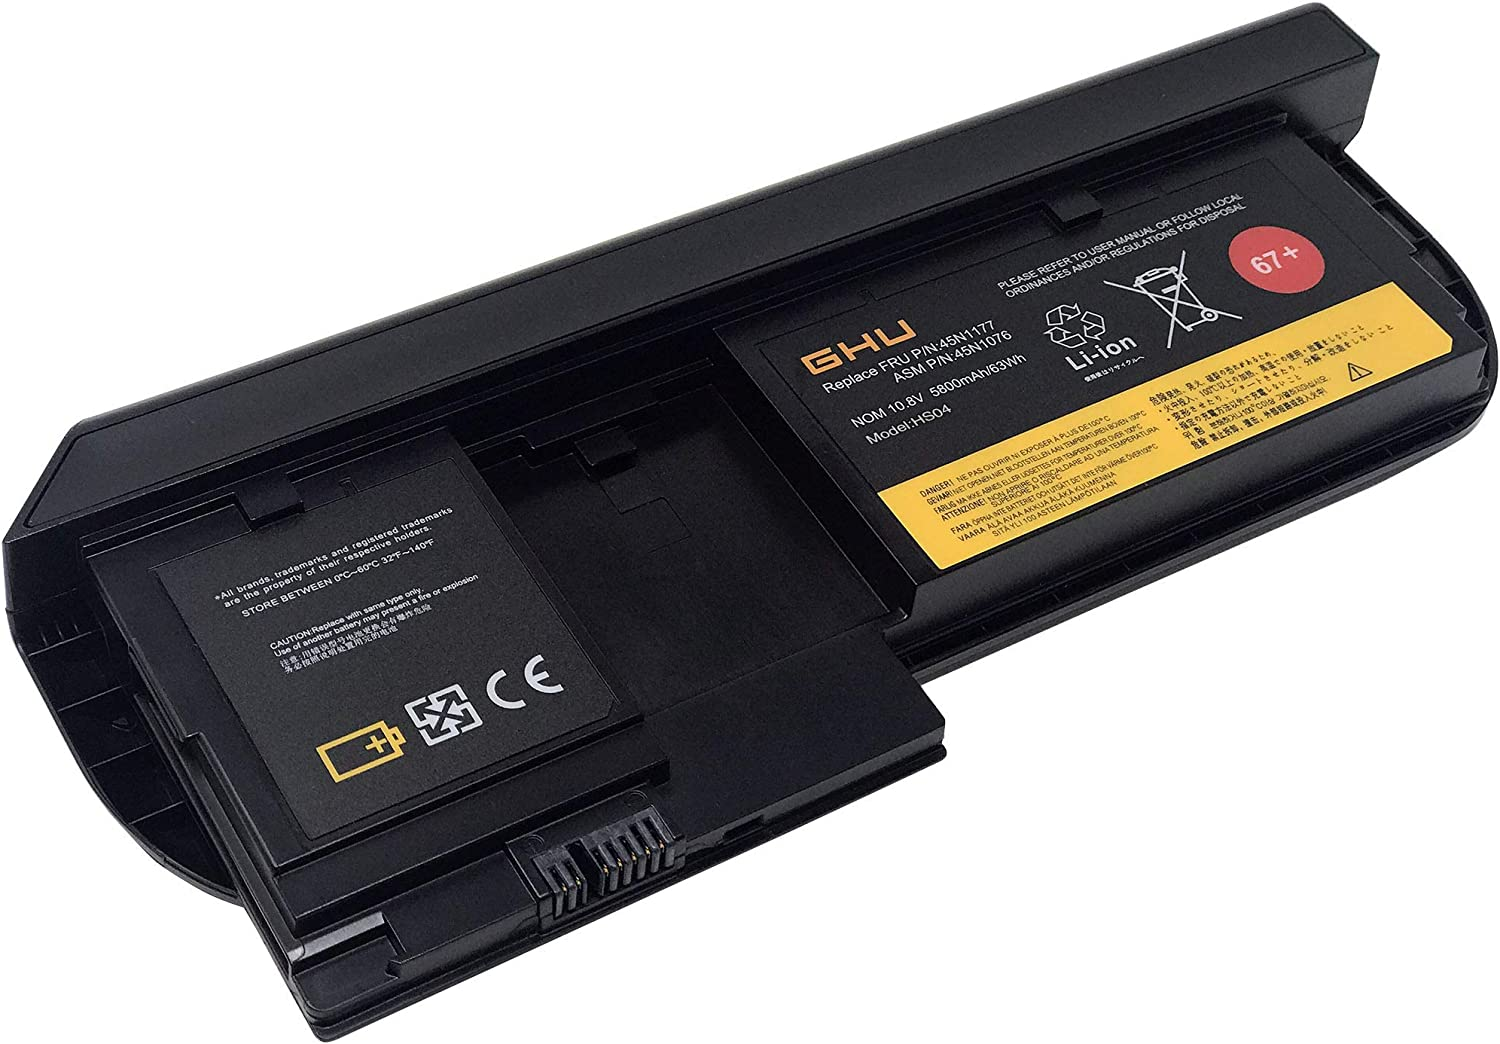 New GHU 63Wh Battery 67+ (0a36317) Compatible with Lenovo X220T Tablet and X230T Tablet 6 Cell, 63WH, 10.8V, 5800mAh, 12 Months Warranty